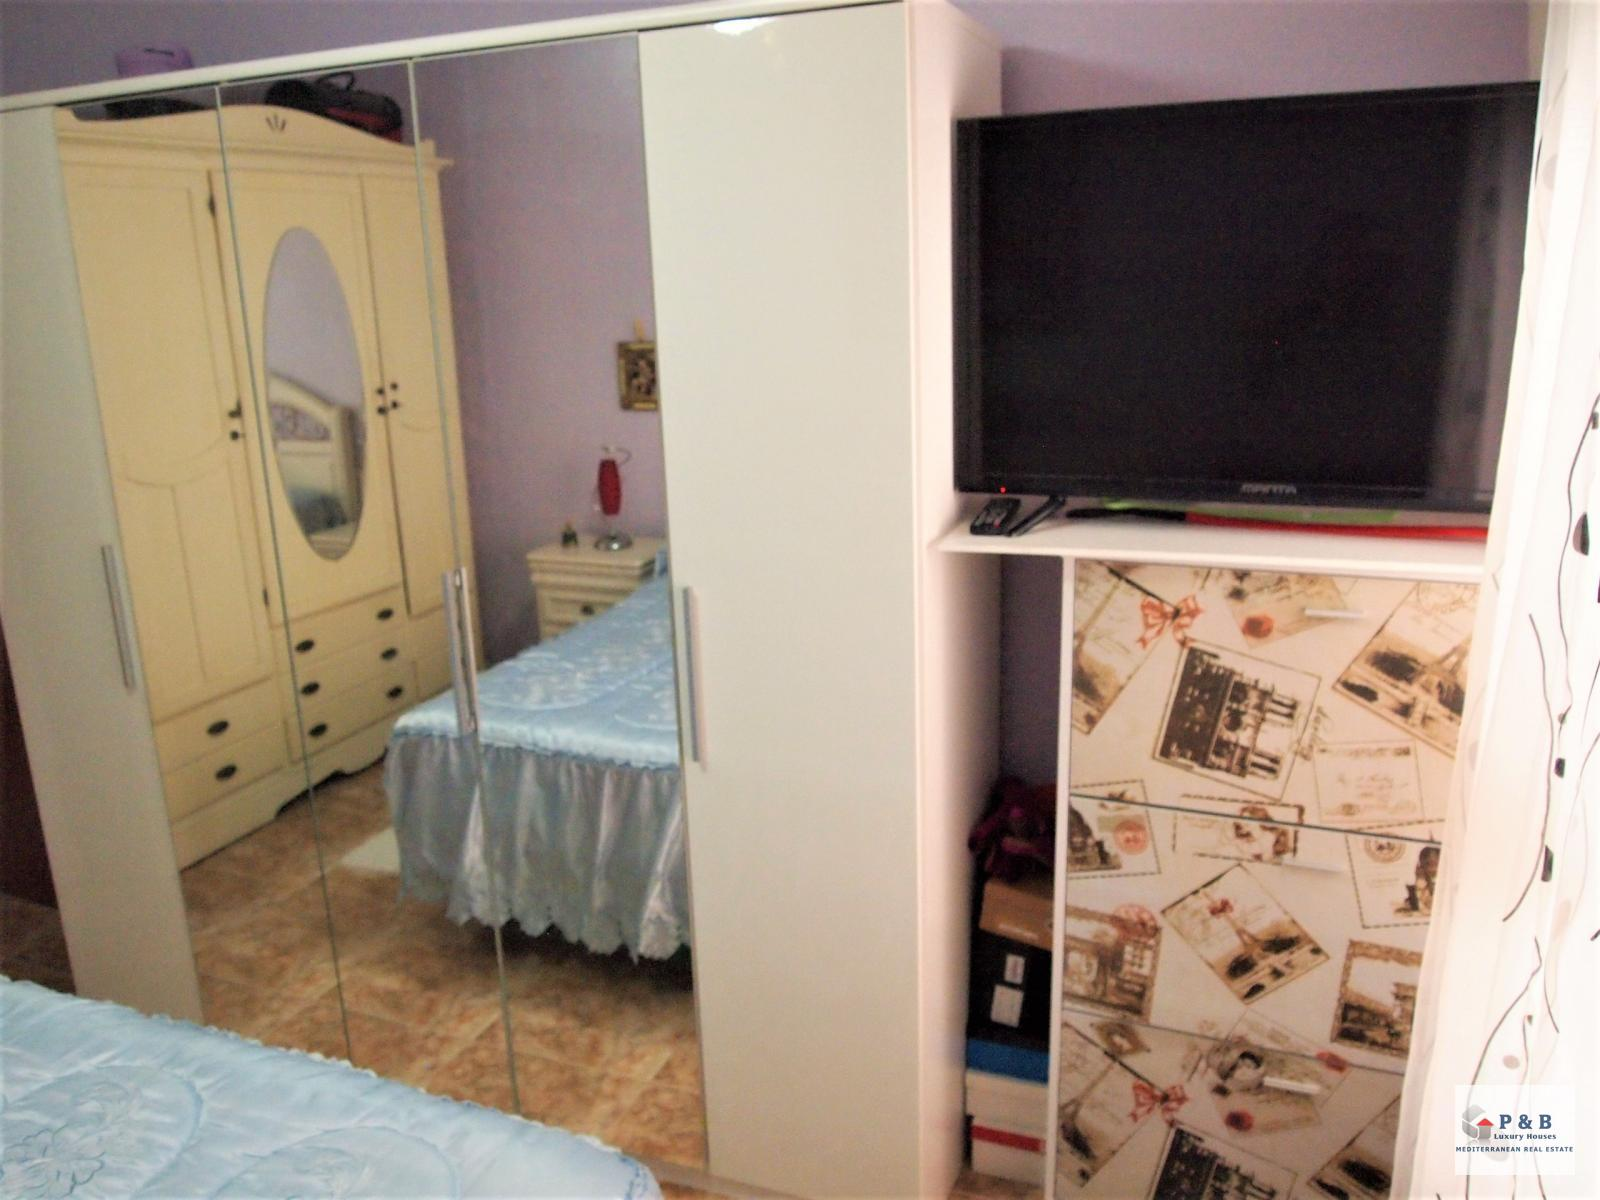 Flat for sale in Playa del Acequion (Torrevieja), 127.000 € (Ref.: 917)